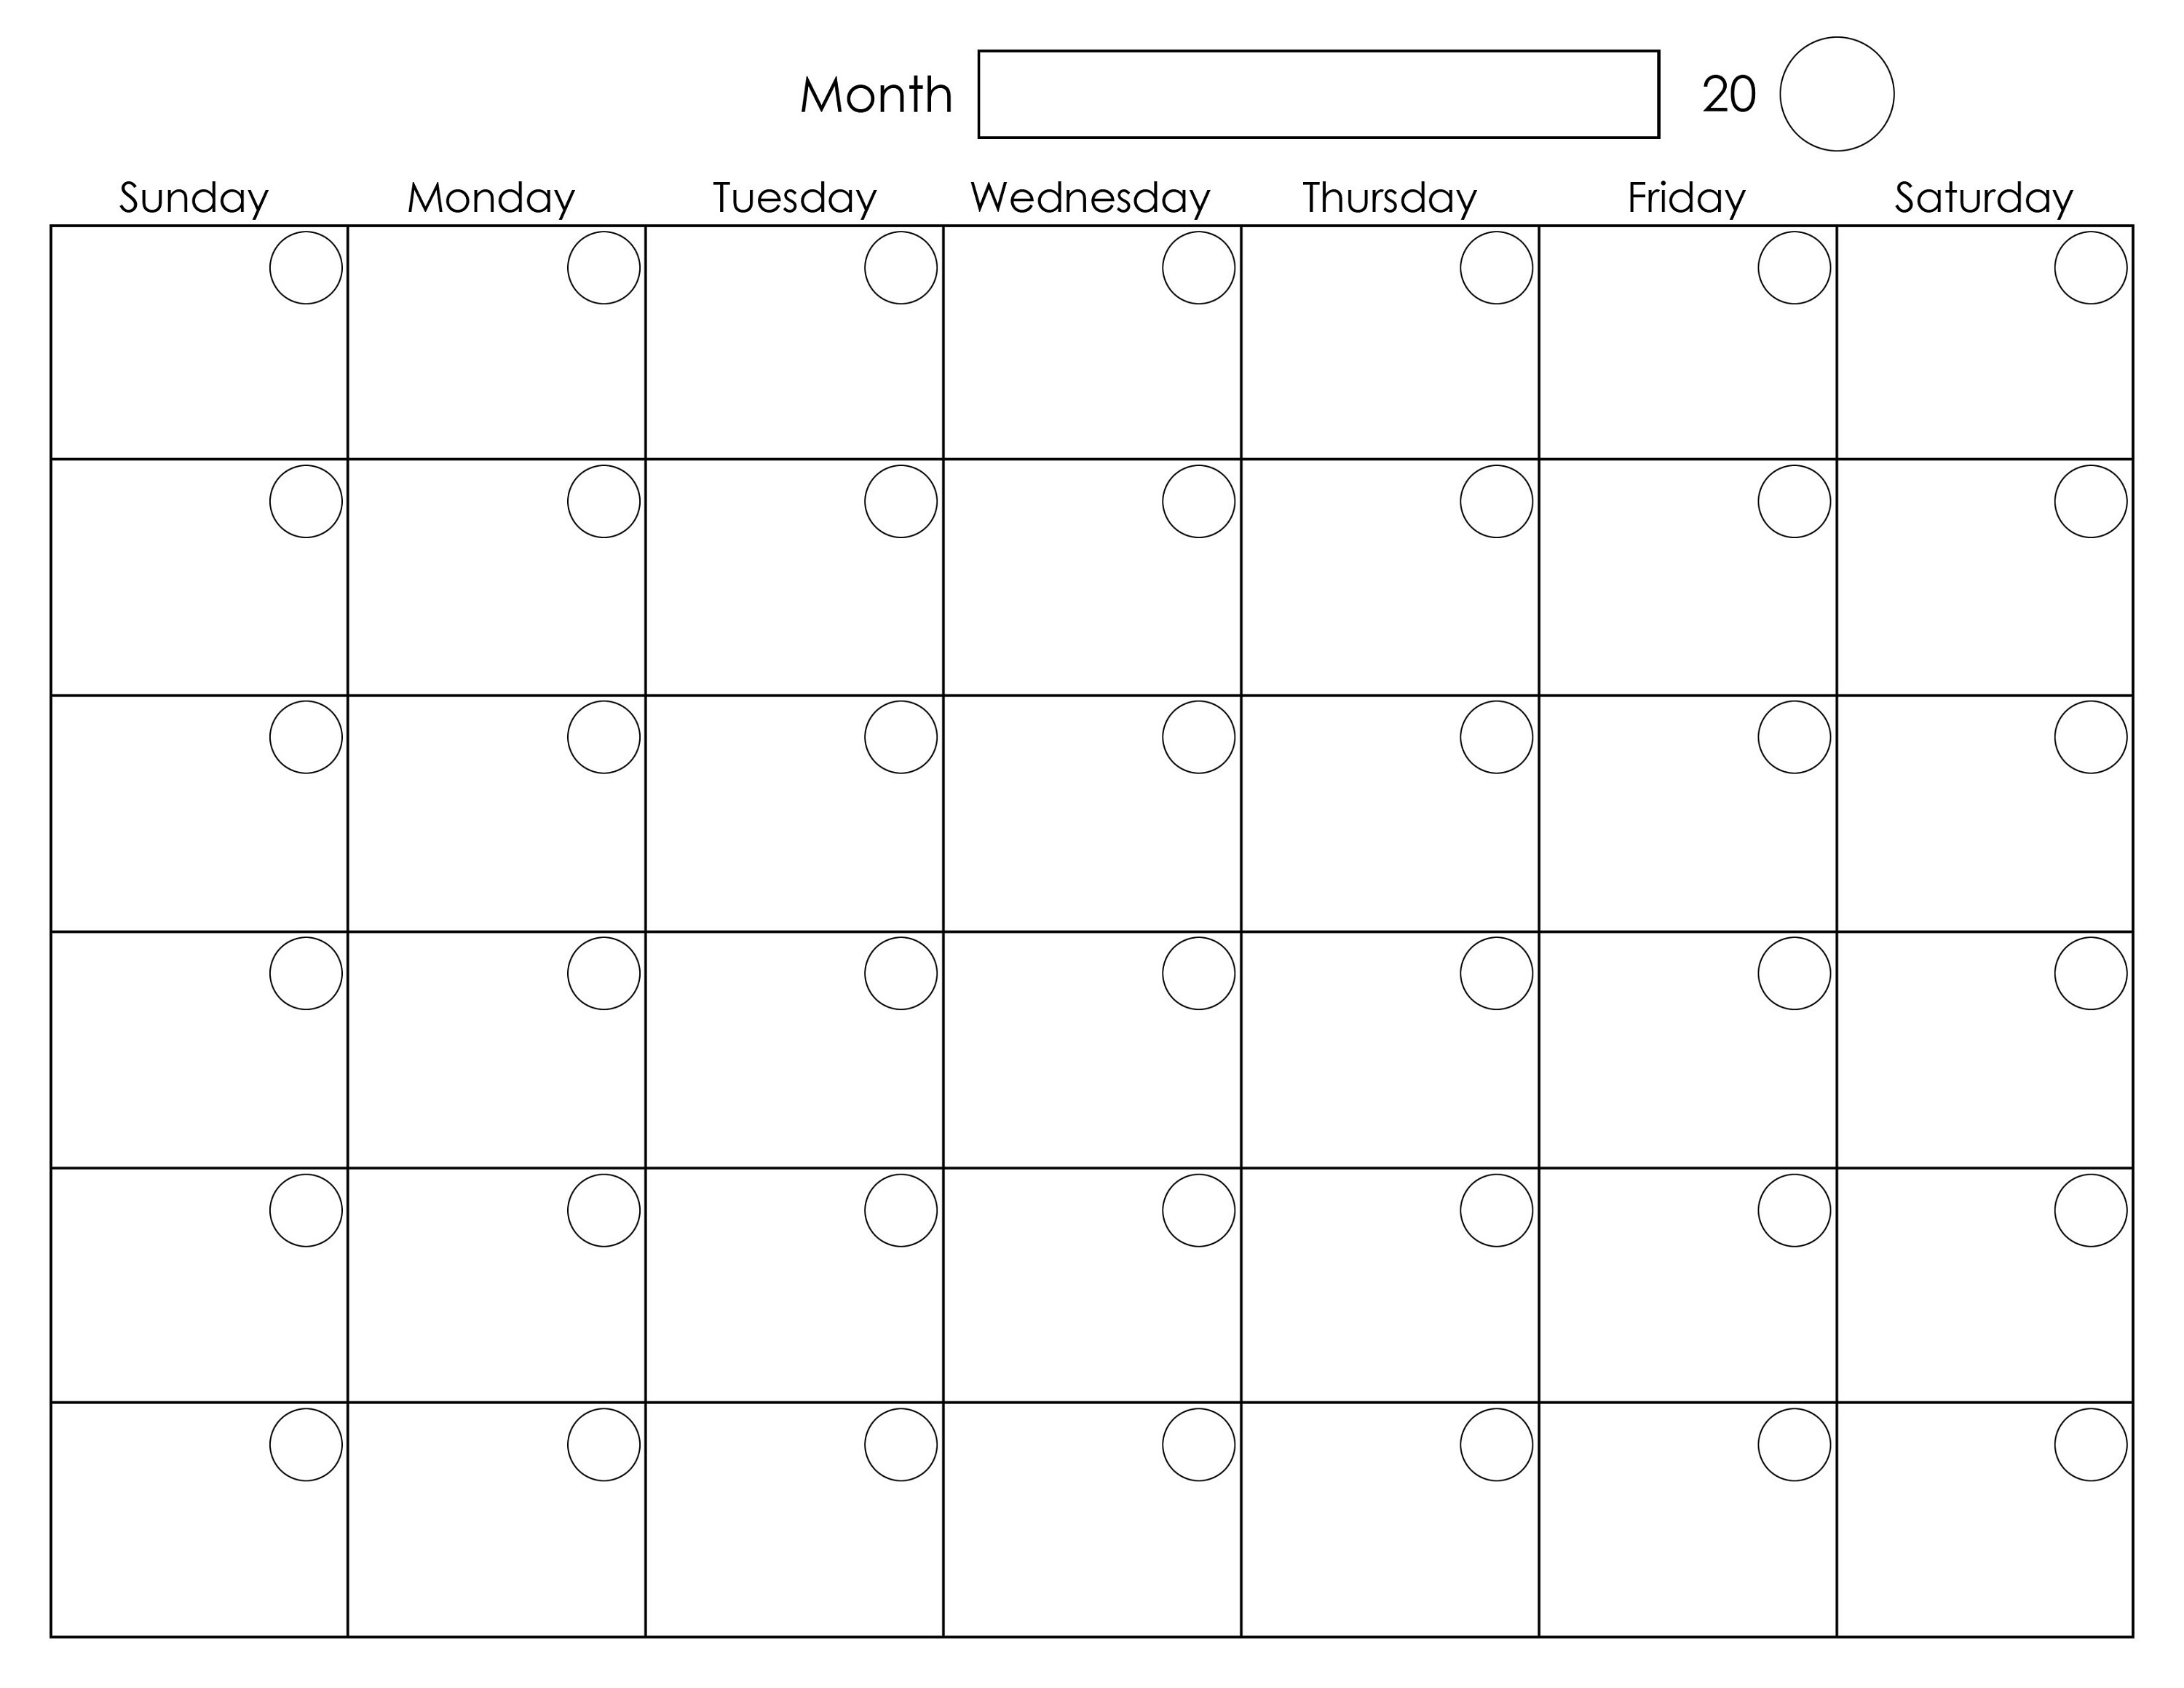 Calendar Activities Printables : Printable blank monthly calendar activity shelter